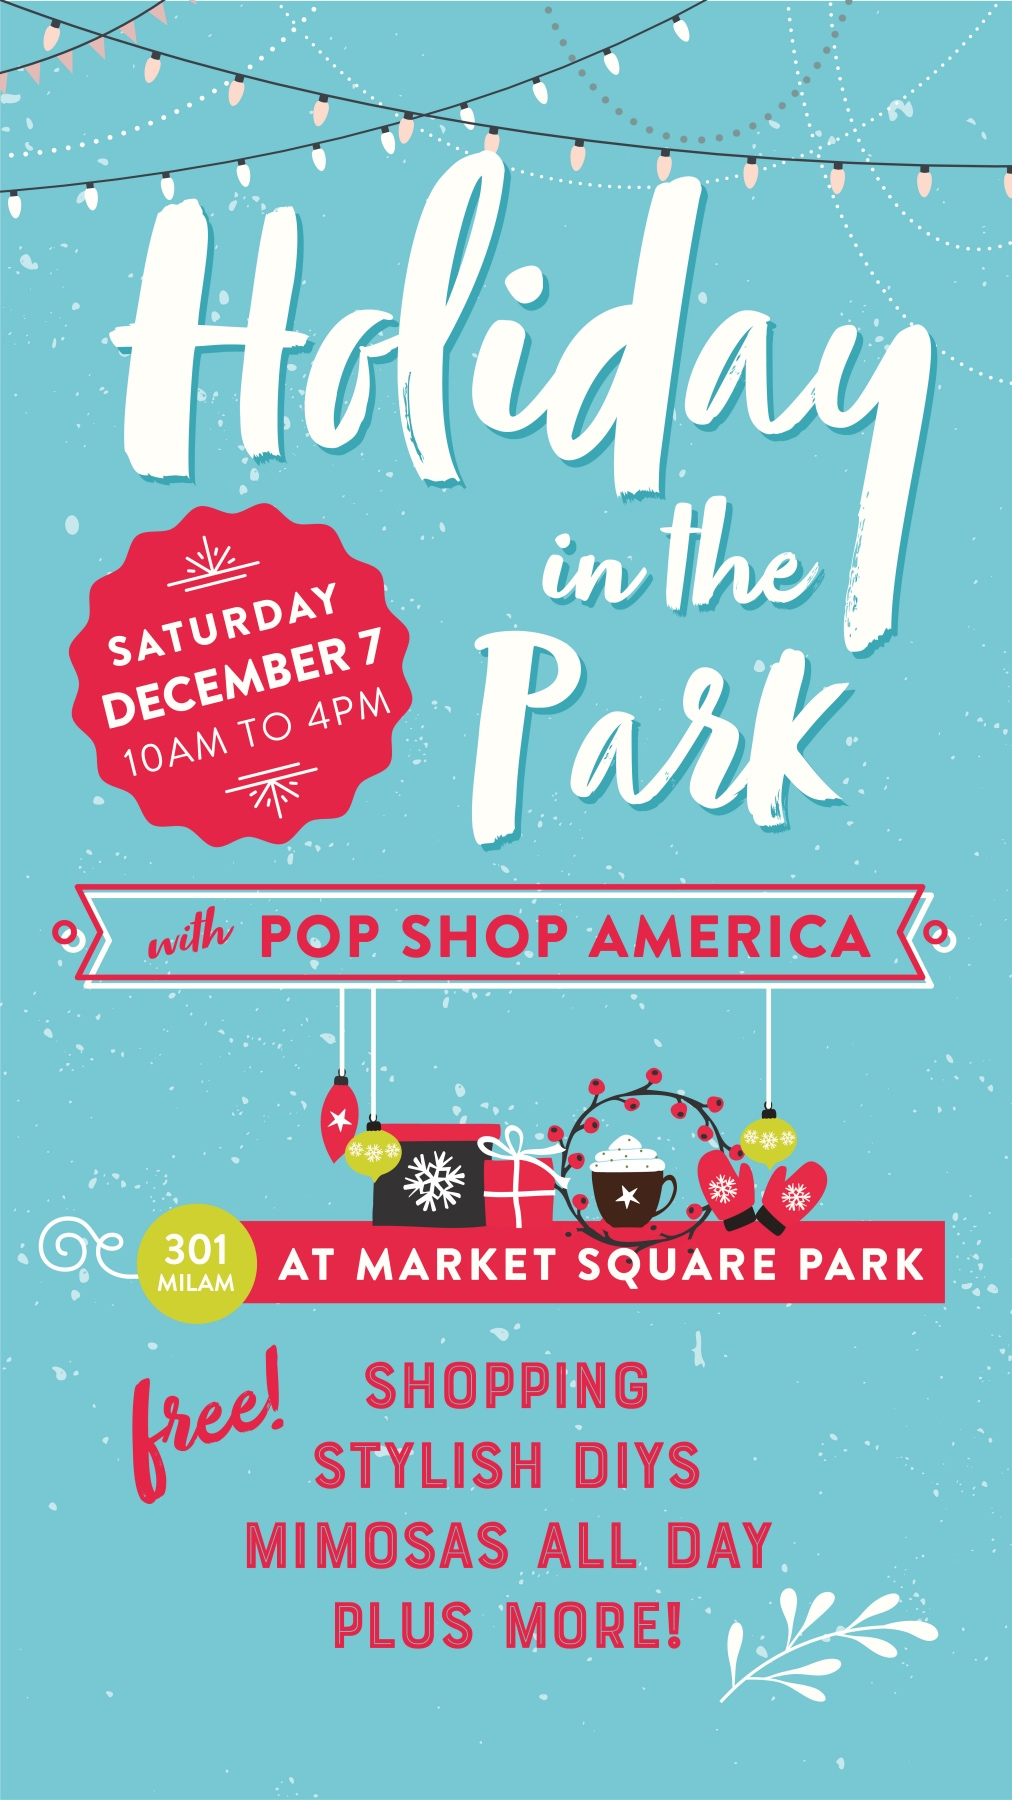 Holiday-in-the-Park-Pop-Up-Pop-Shop-America_web